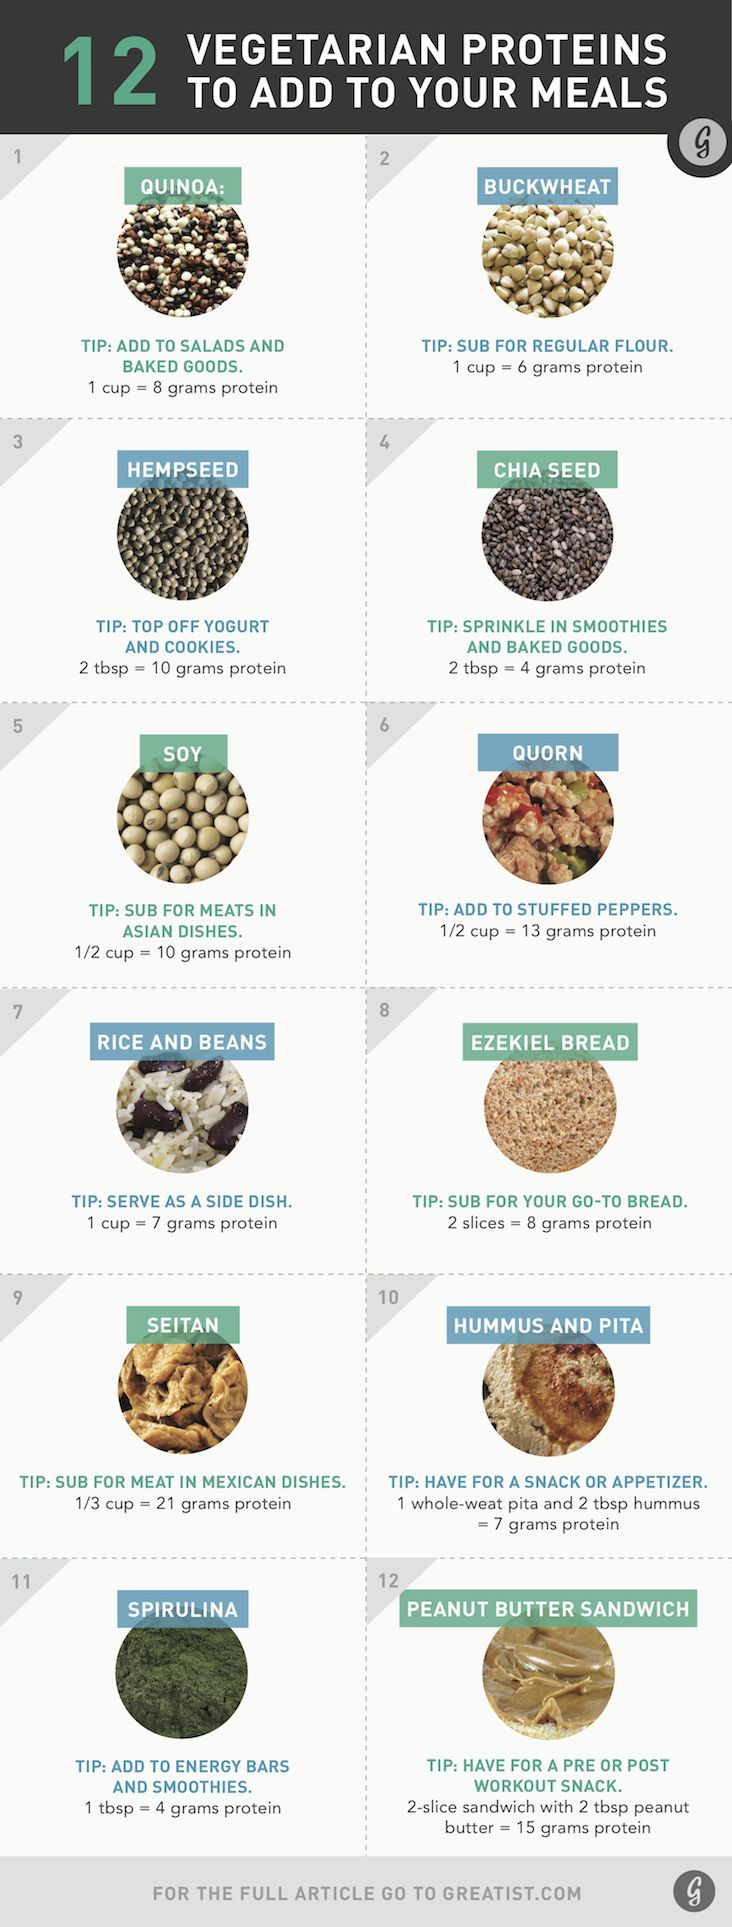 This is your #1 Top Pin in the Vegan Community Board in October: 12 Complete Proteins Vegetarians Need to Know About [Infographic] Check out the website to see more - 527 re-pins (You voted with yor re-pins). Congratulations @thegideontree ! Vegan Community Board http://www.pinterest.com/heidrunkarin/vegan-community